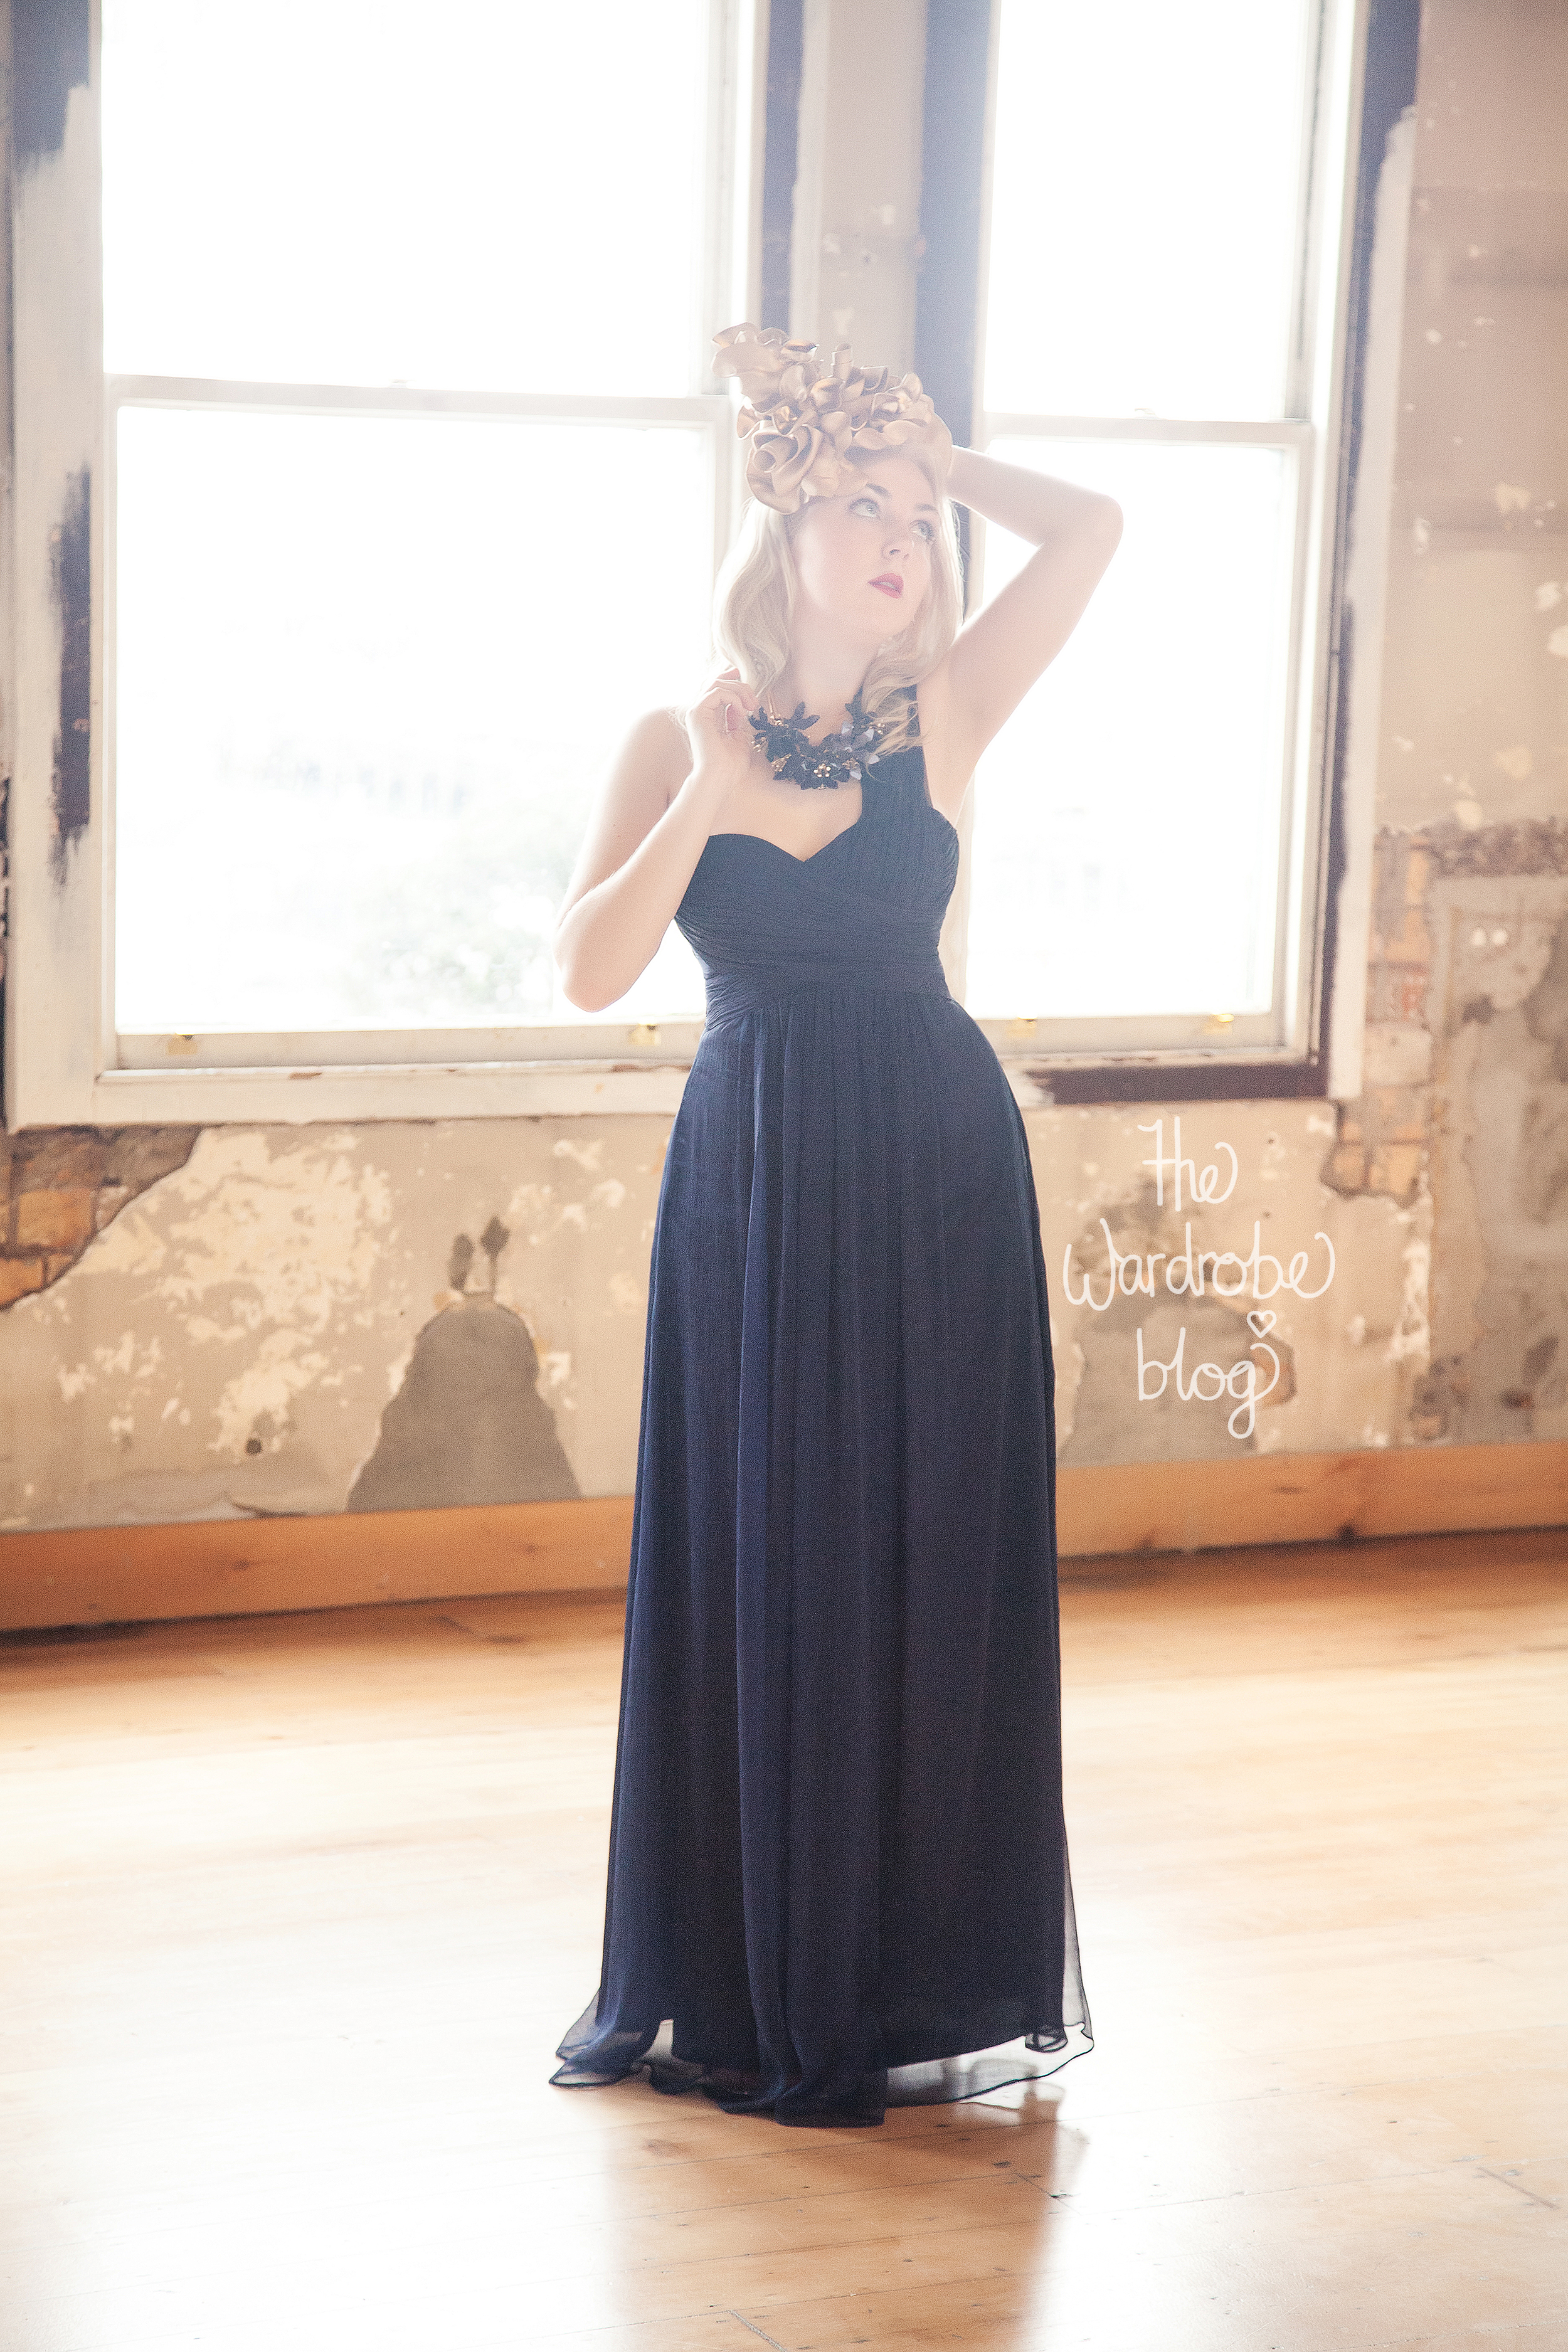 Gown from Hera Bridal in Navy, Headpiece + Necklace from Claire Hahn.